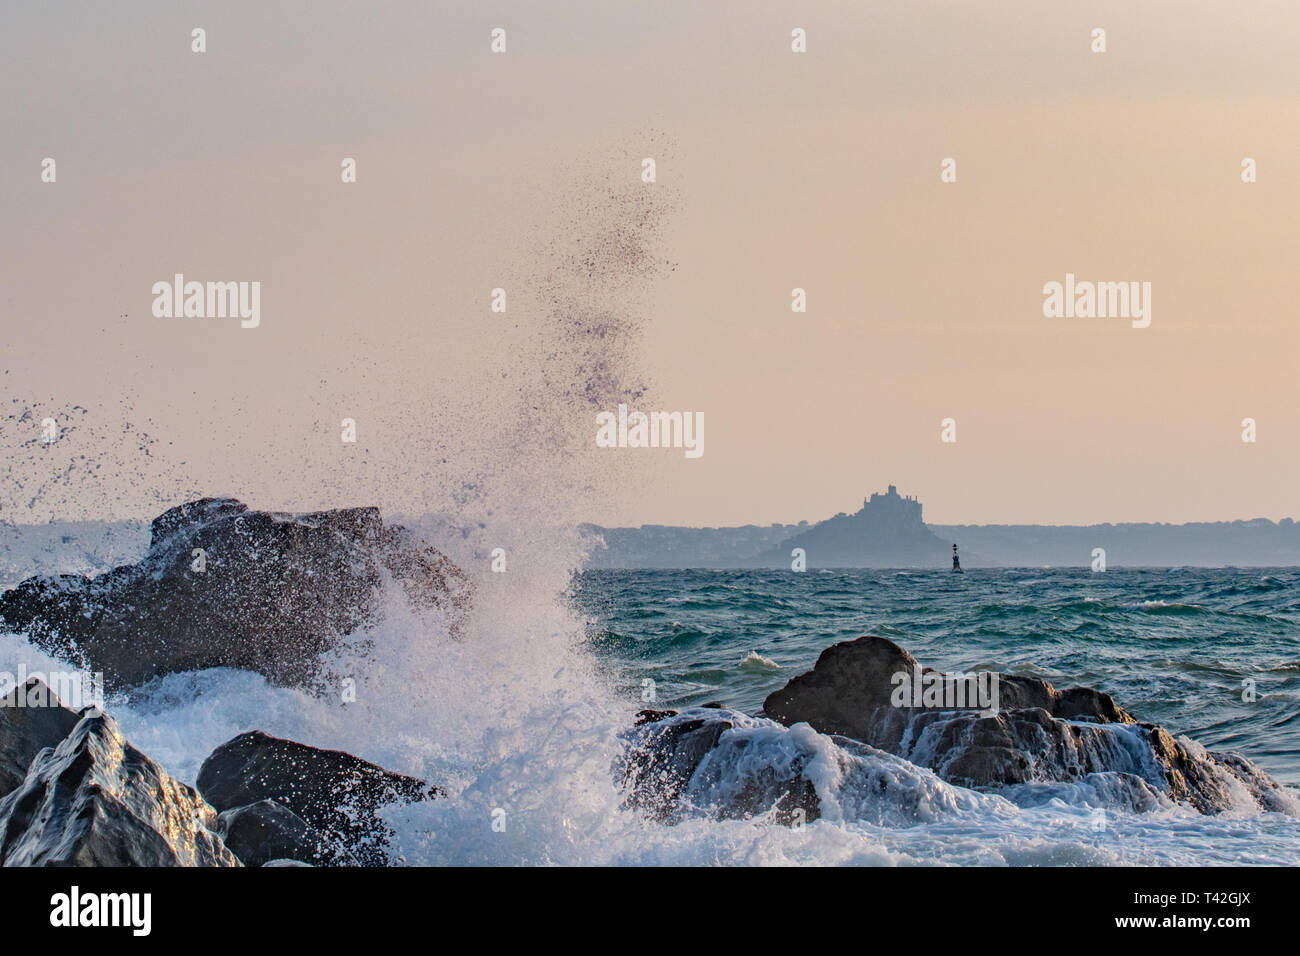 Mousehole, Cornwall, UK. 13th Apr, 2019. UK Weather. Cold winds from the East approaching 50 mph are starting to hit the coast of Cornwall. Credit: Simon Maycock/Alamy Live News Stock Photo